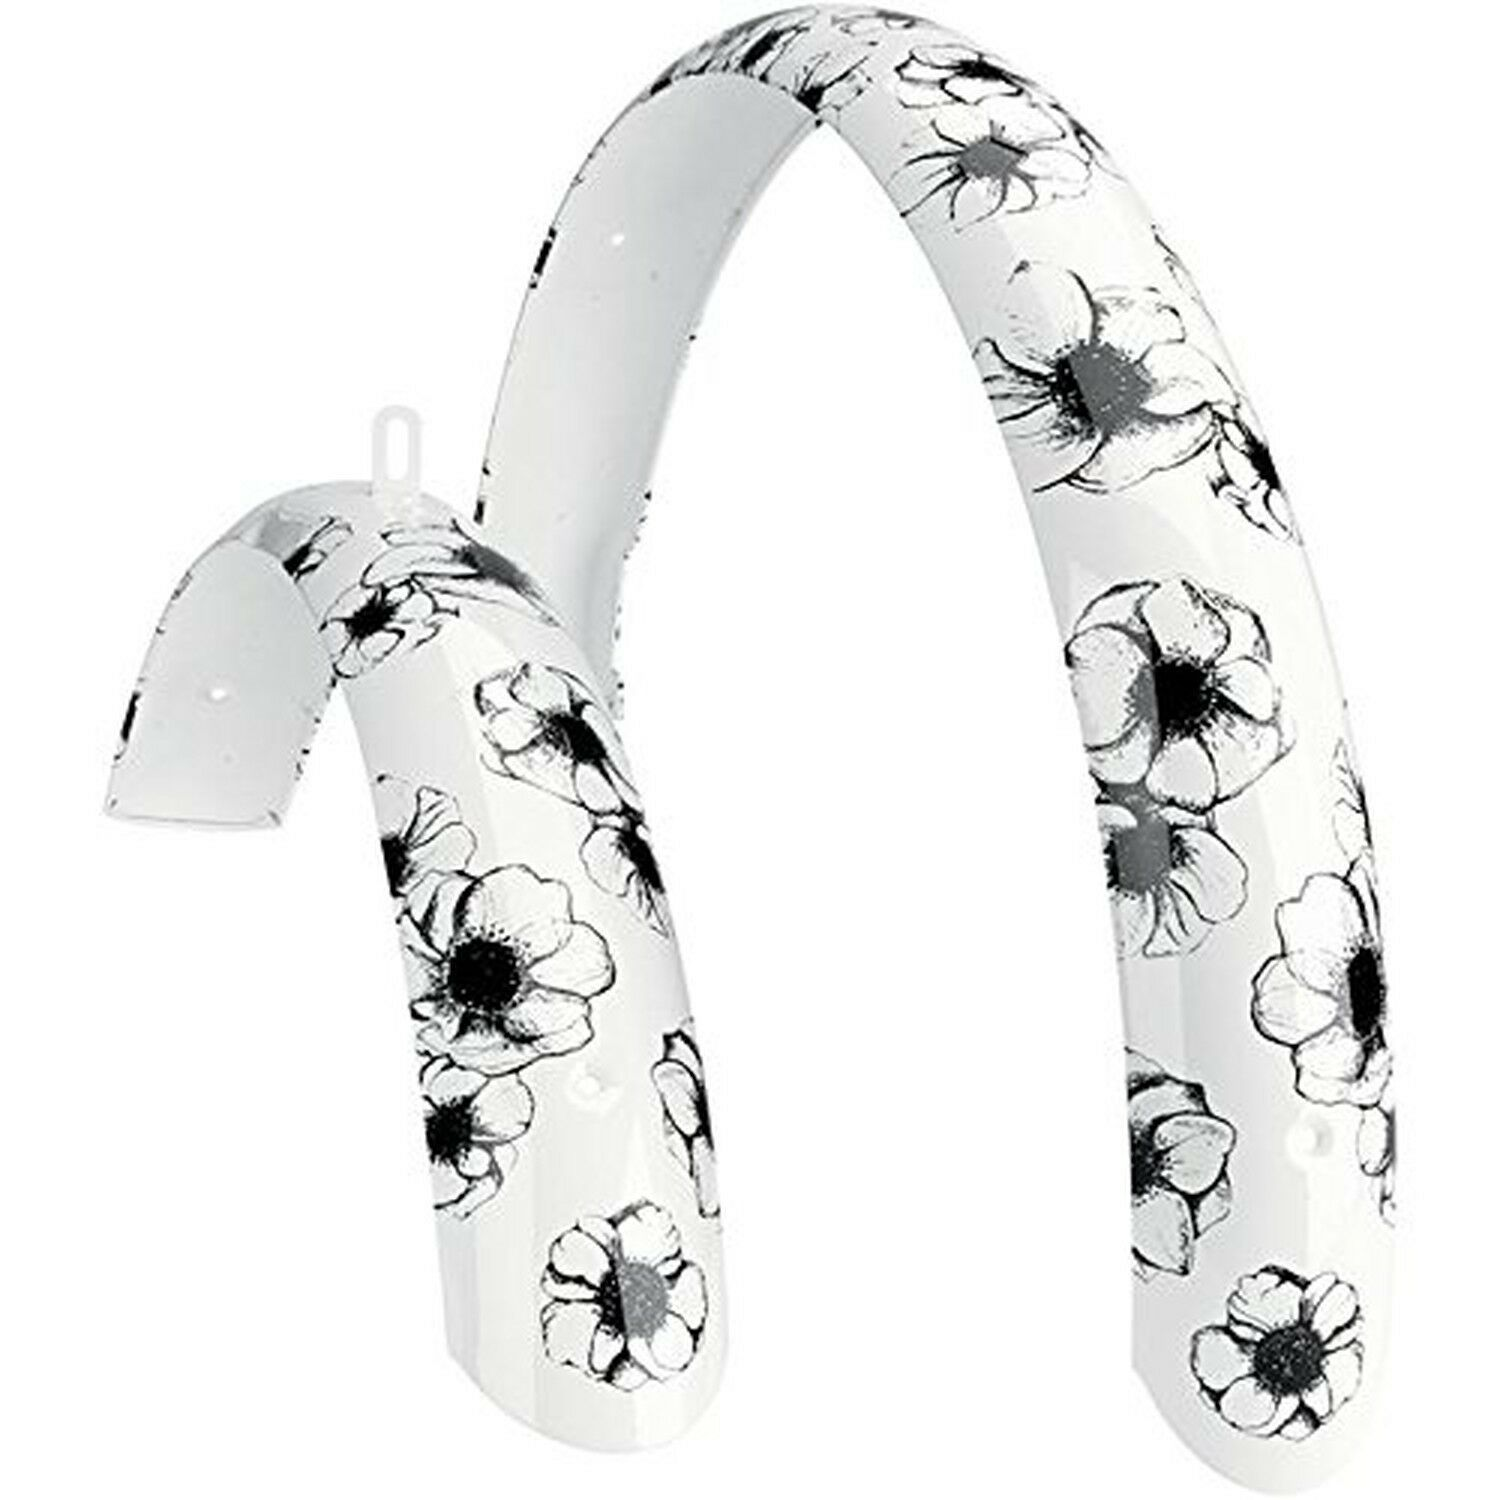 Electra 26 inch  Cruiser Fender Front Rear Womens Bike Bicycle Set (Flowers)  first-class quality